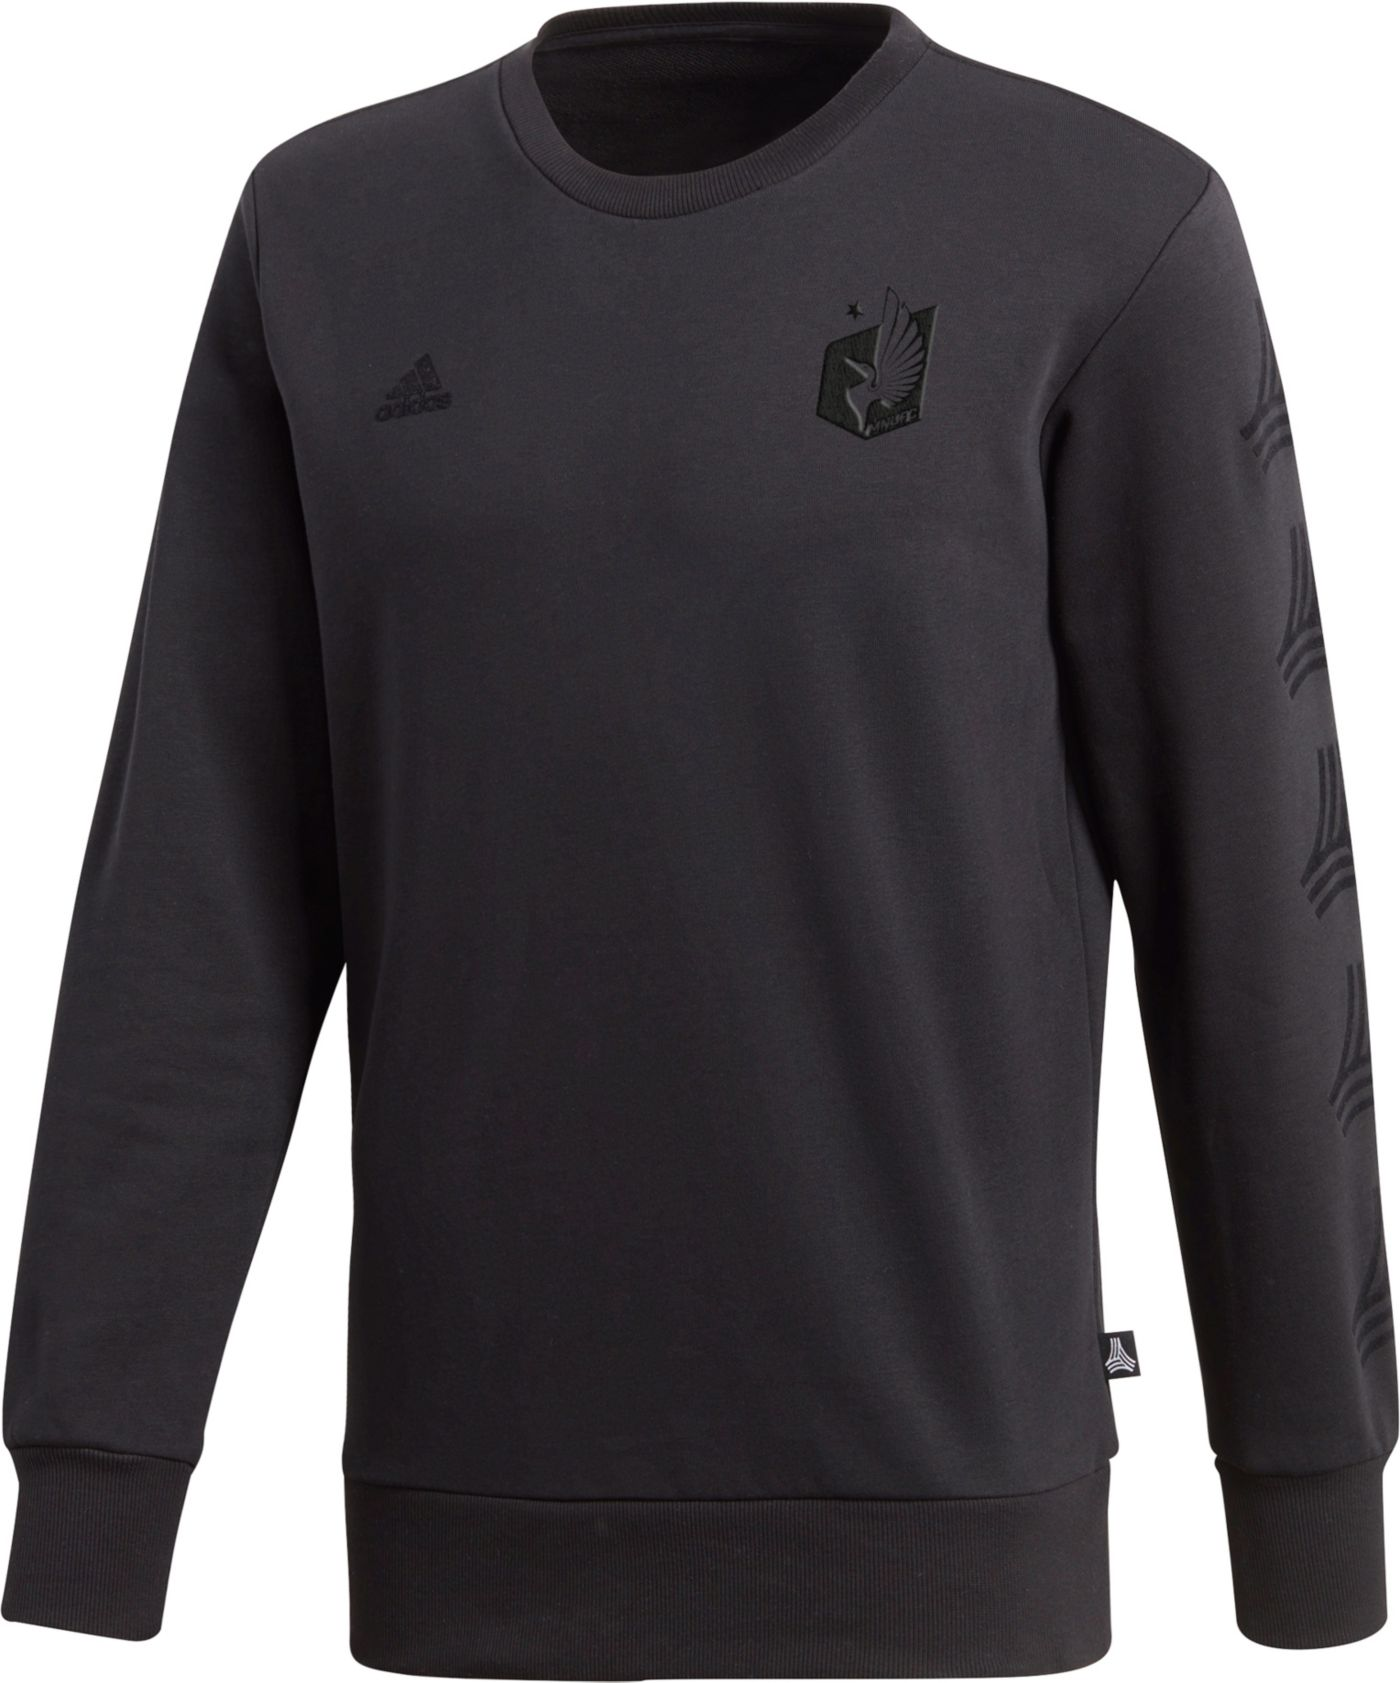 adidas Men's Minnesota United FC Tango Black Crew Sweatshirt